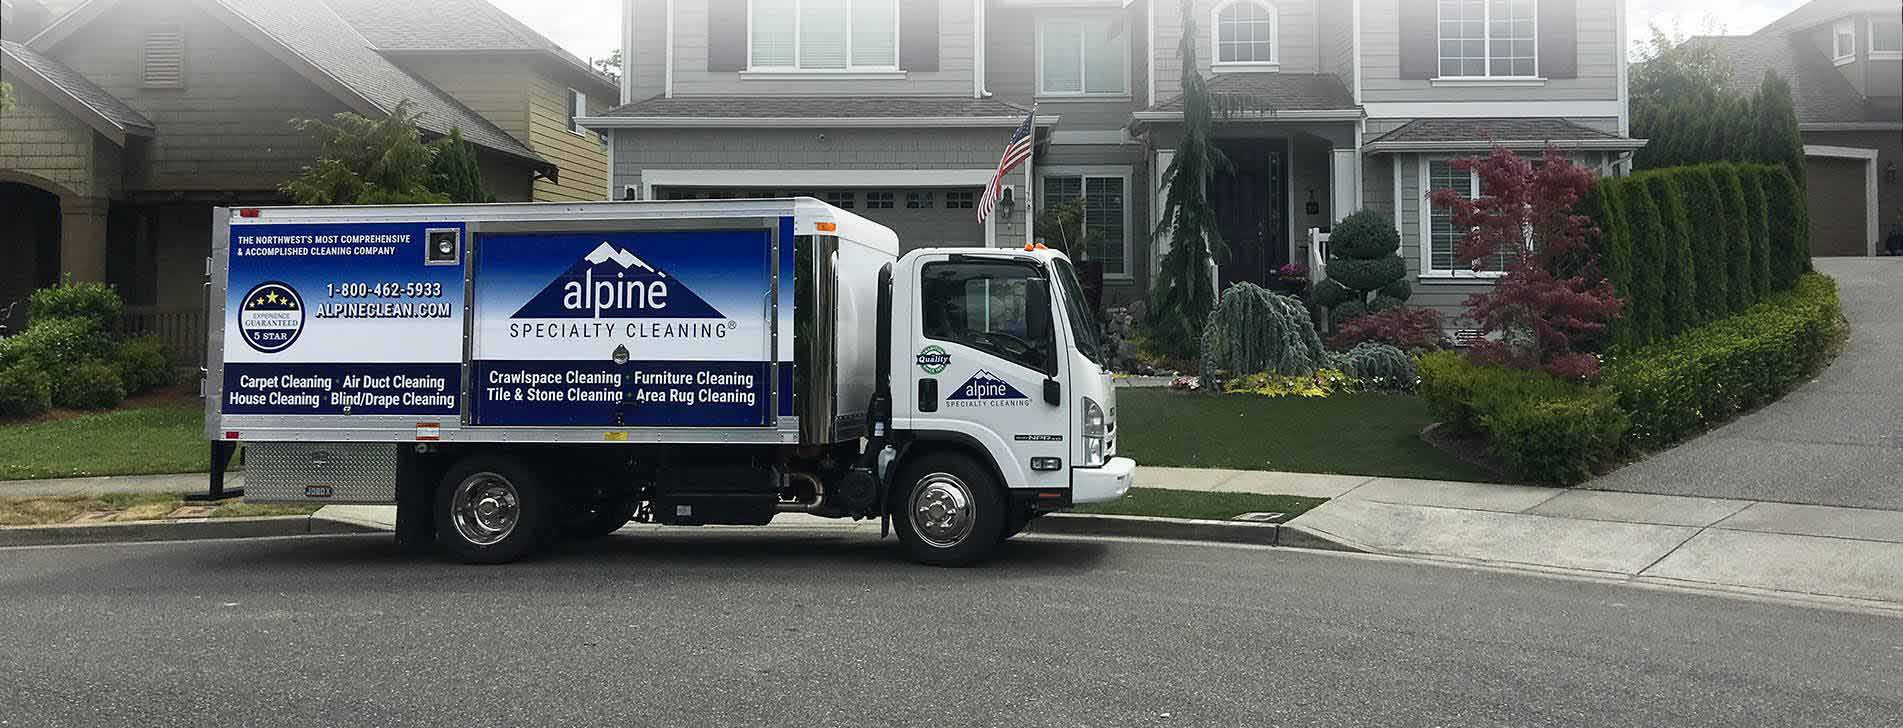 Seattle Carpet Cleaning Alpine Specialty Cleaning